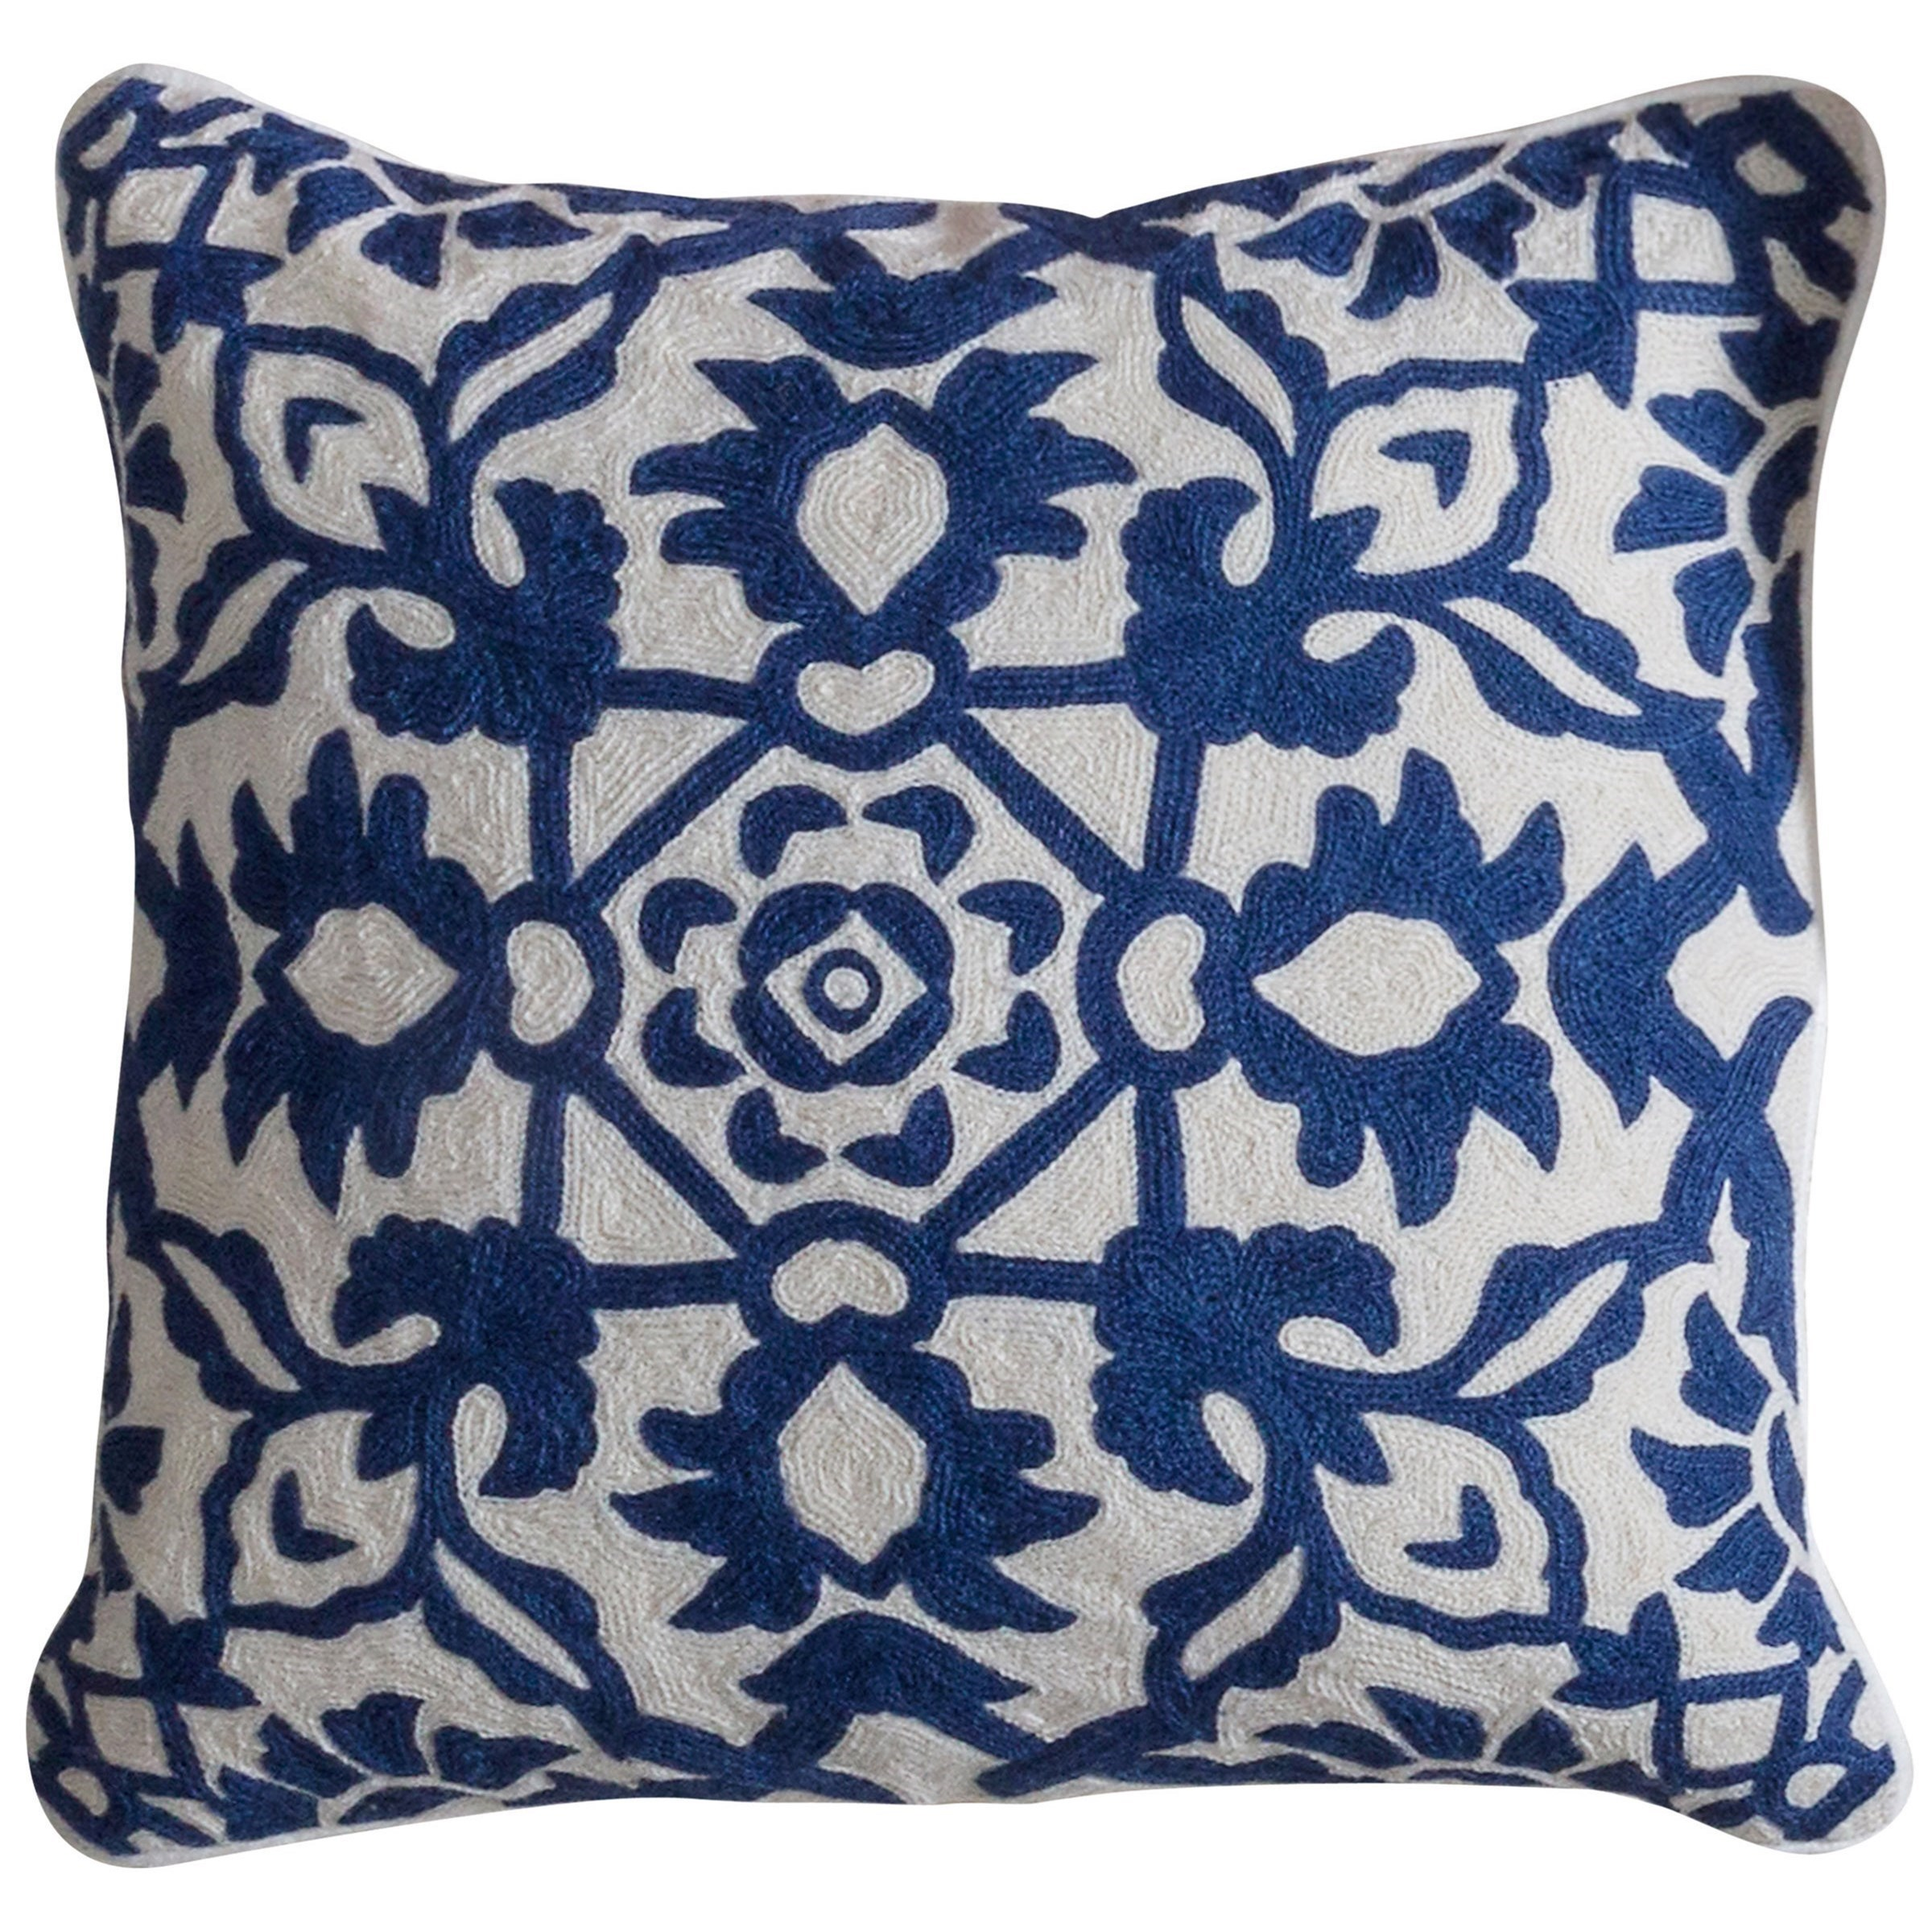 Accessories Blue and White Accent Pillow by StyleCraft at Alison Craig Home Furnishings